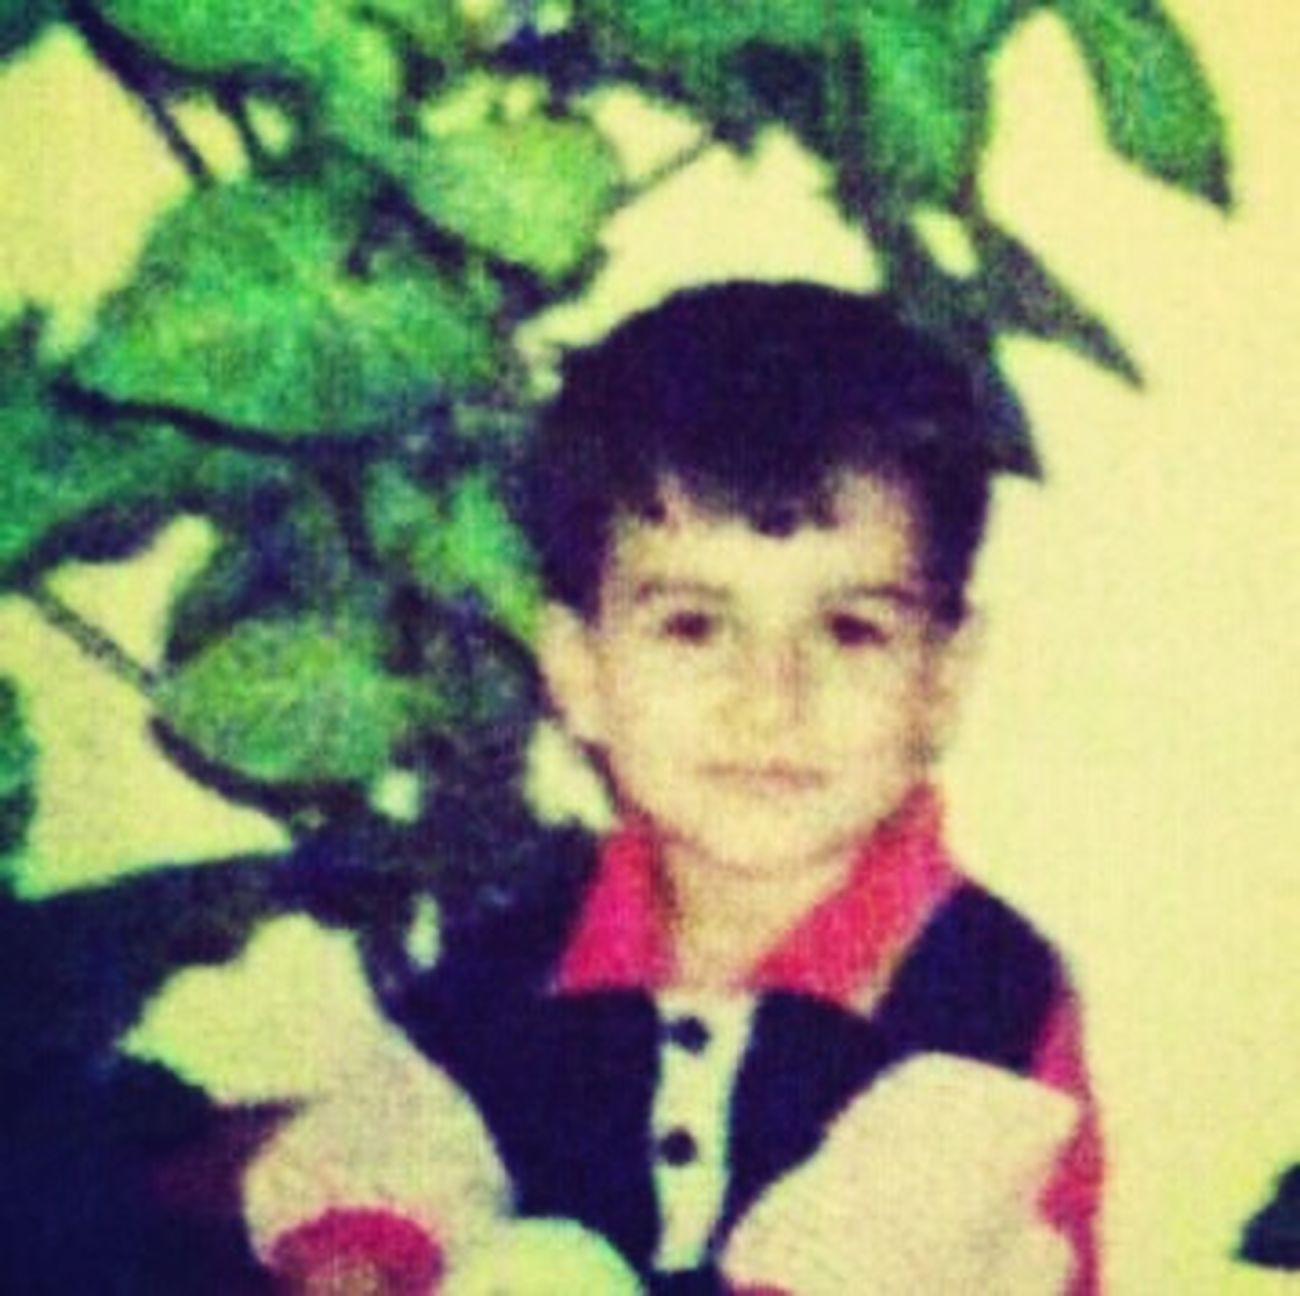 That's Me Wheniwasachild Childhood Childhood Memories Check This Out 90s 90skid 90schild 90s Kid When ı Was Little